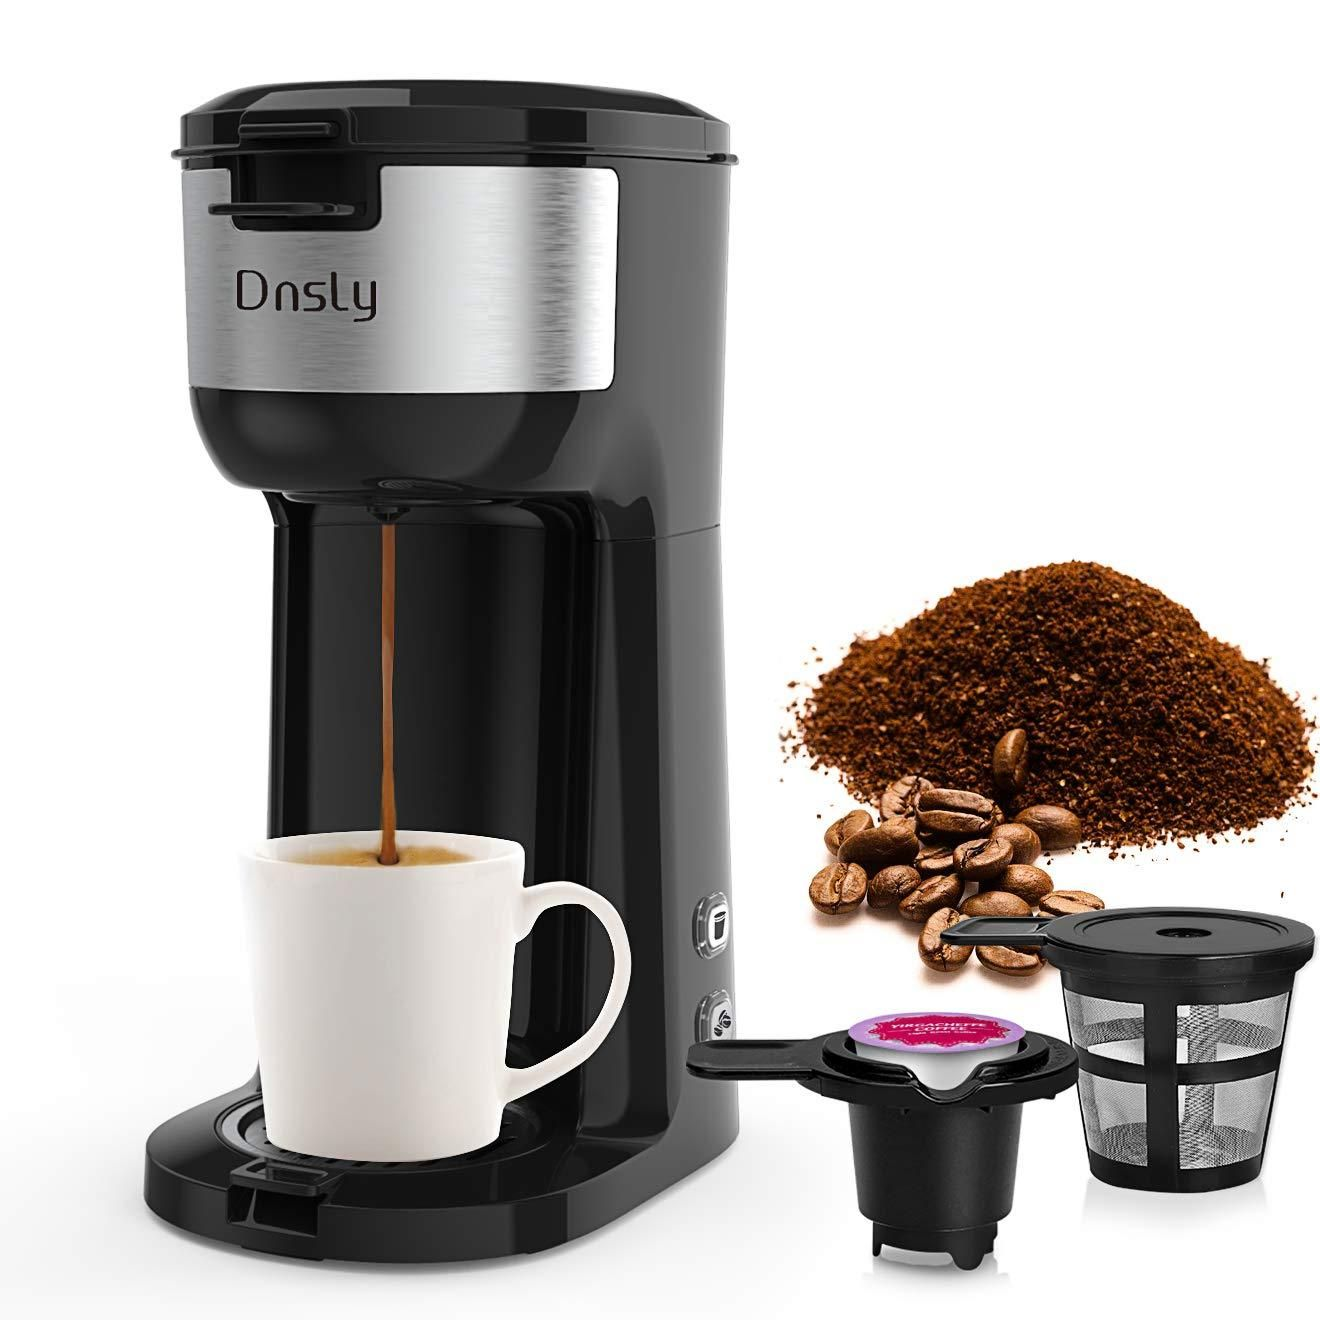 Dnsly coffee maker single serve, kcup pod & ground coffee